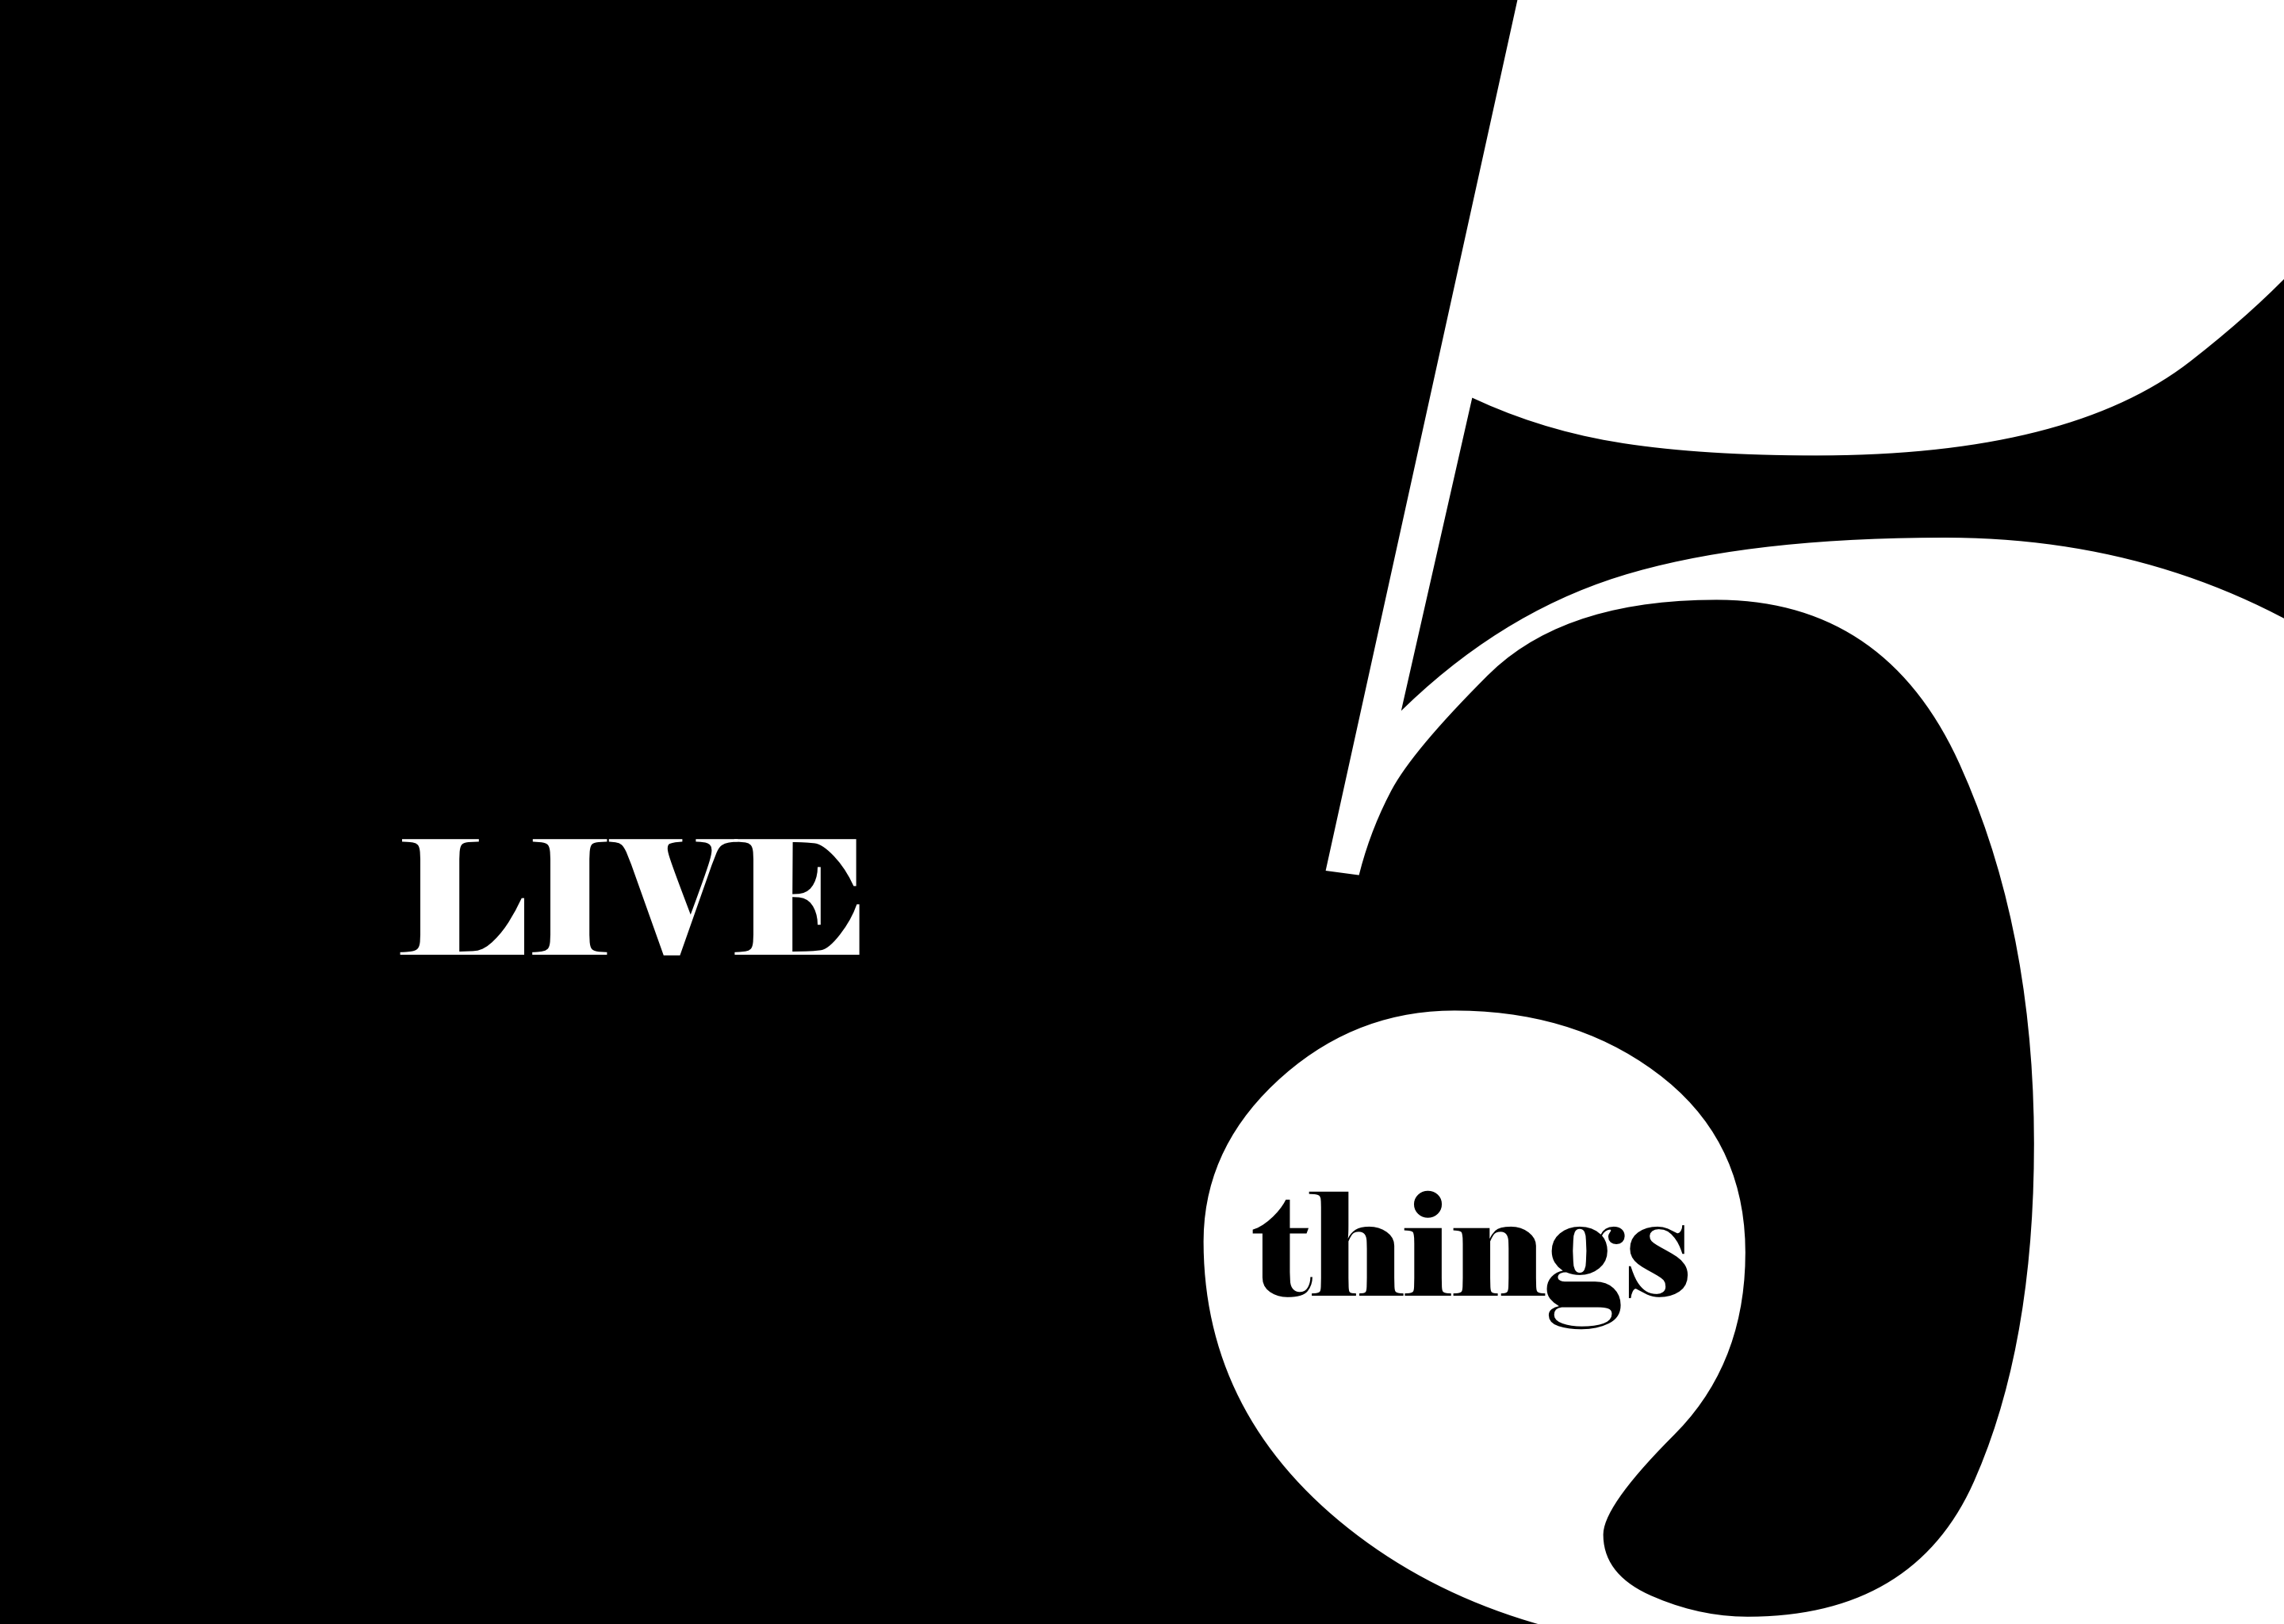 5 Things Live